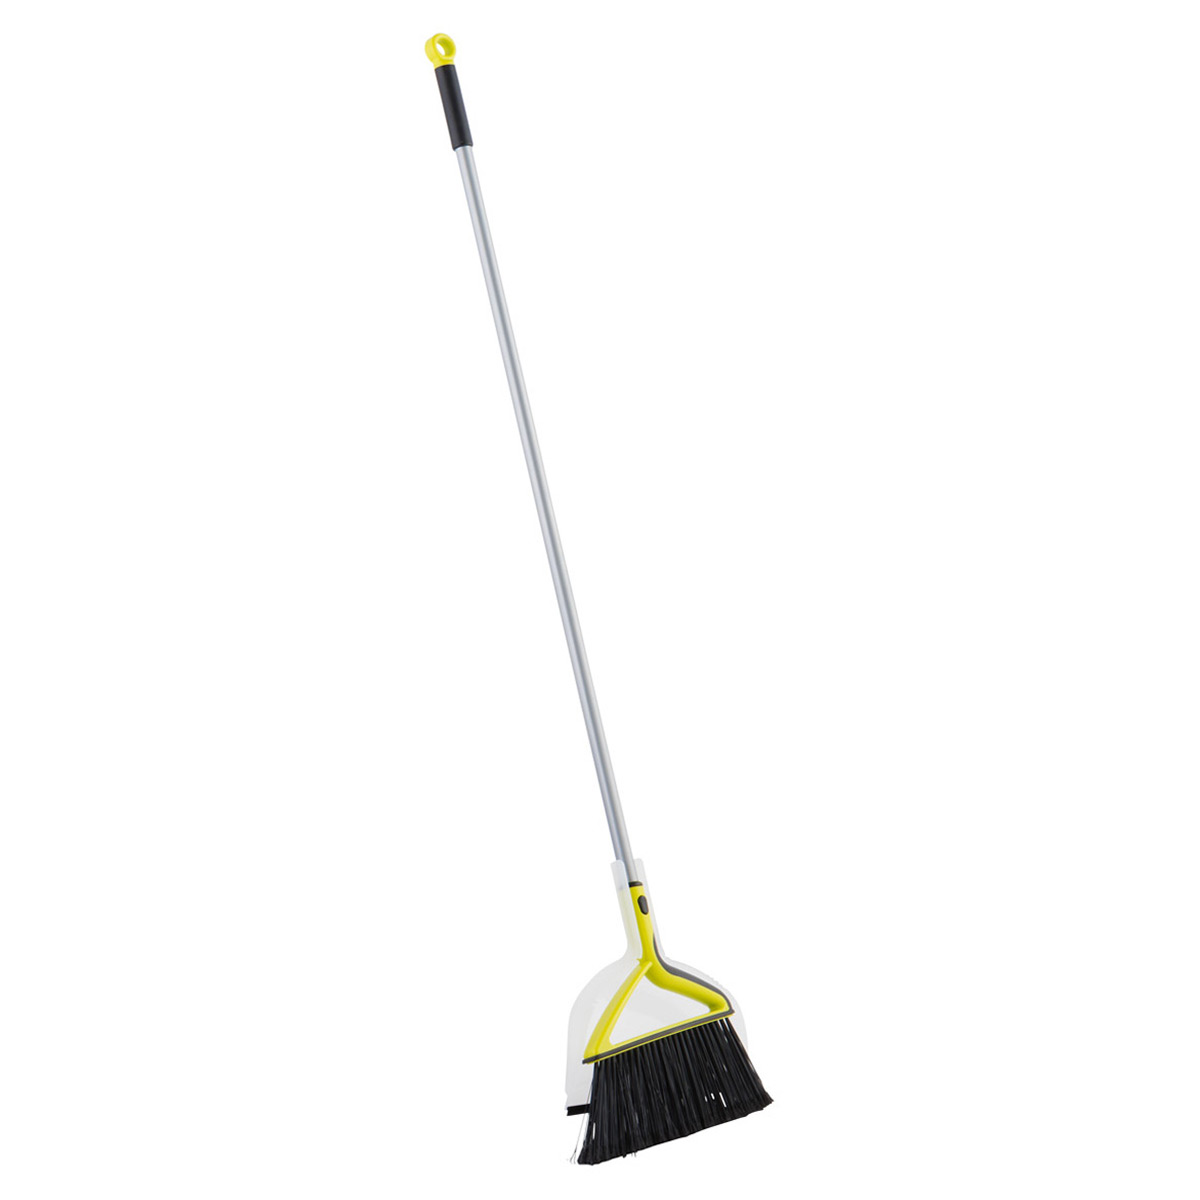 XL Broom and Dustpan